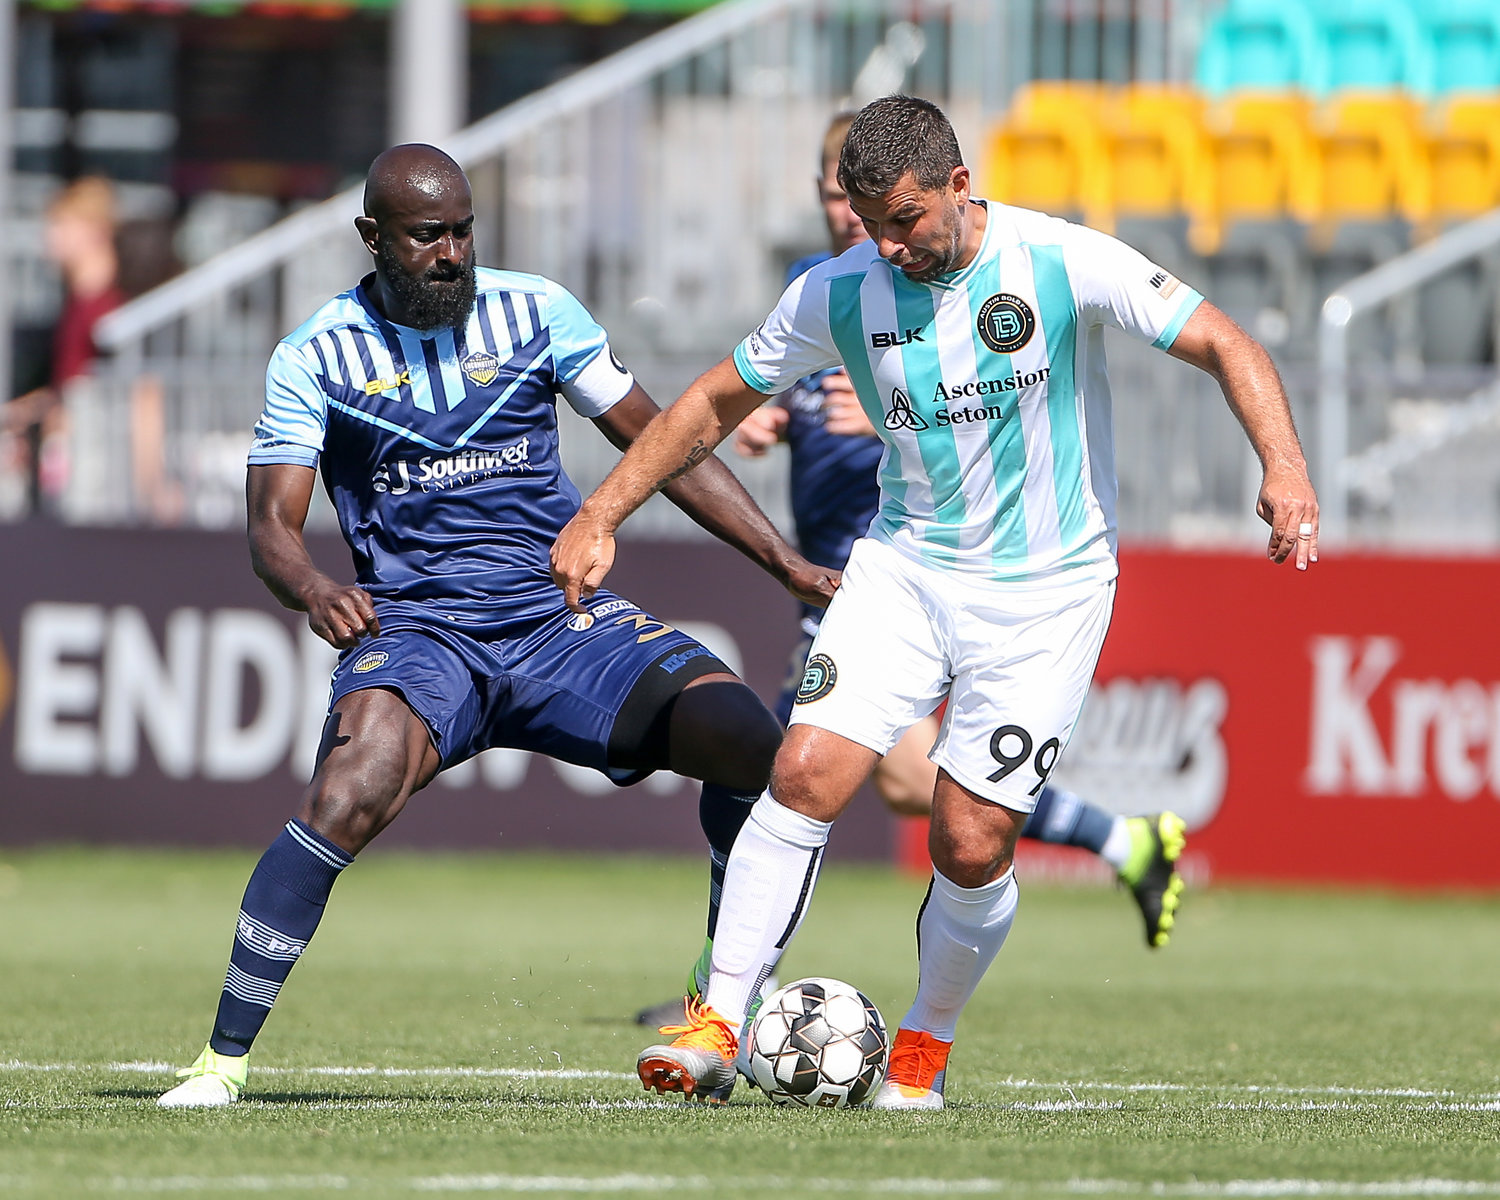 Austin Bold FC forward André Lima (99) works against El Paso Locomotive FC defender Chiró N'Toko (3) during a United Soccer League game between Austin Bold FC and El Paso Locomotive FC on April 21, 2019 at Bold Stadium in Austin, Texas.